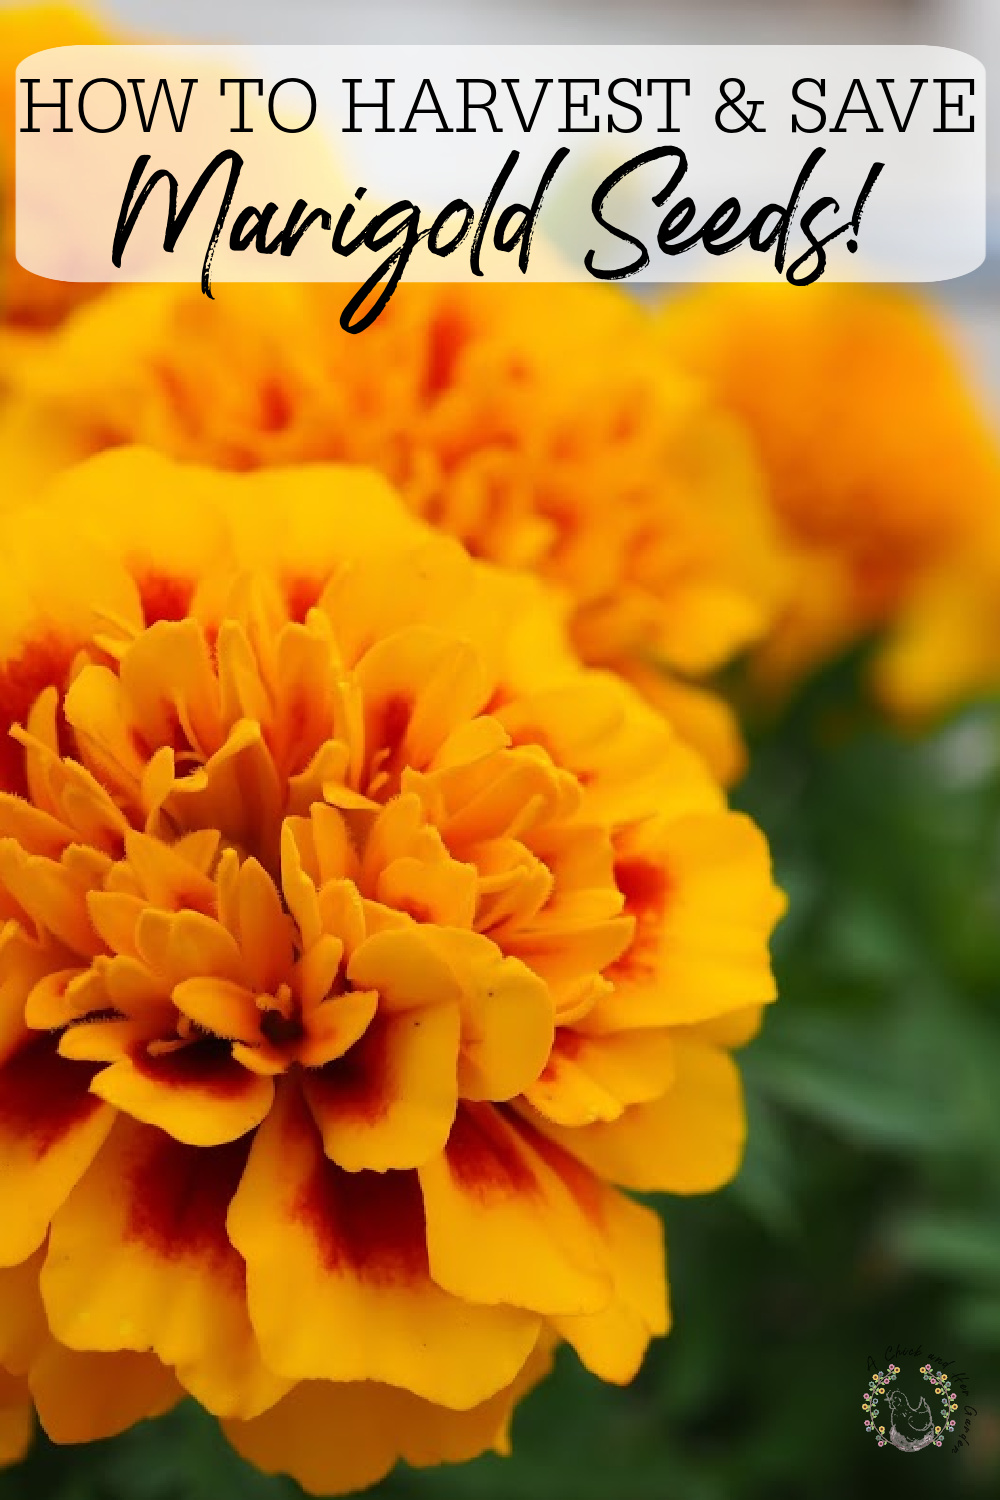 marigold close up in pinterest image